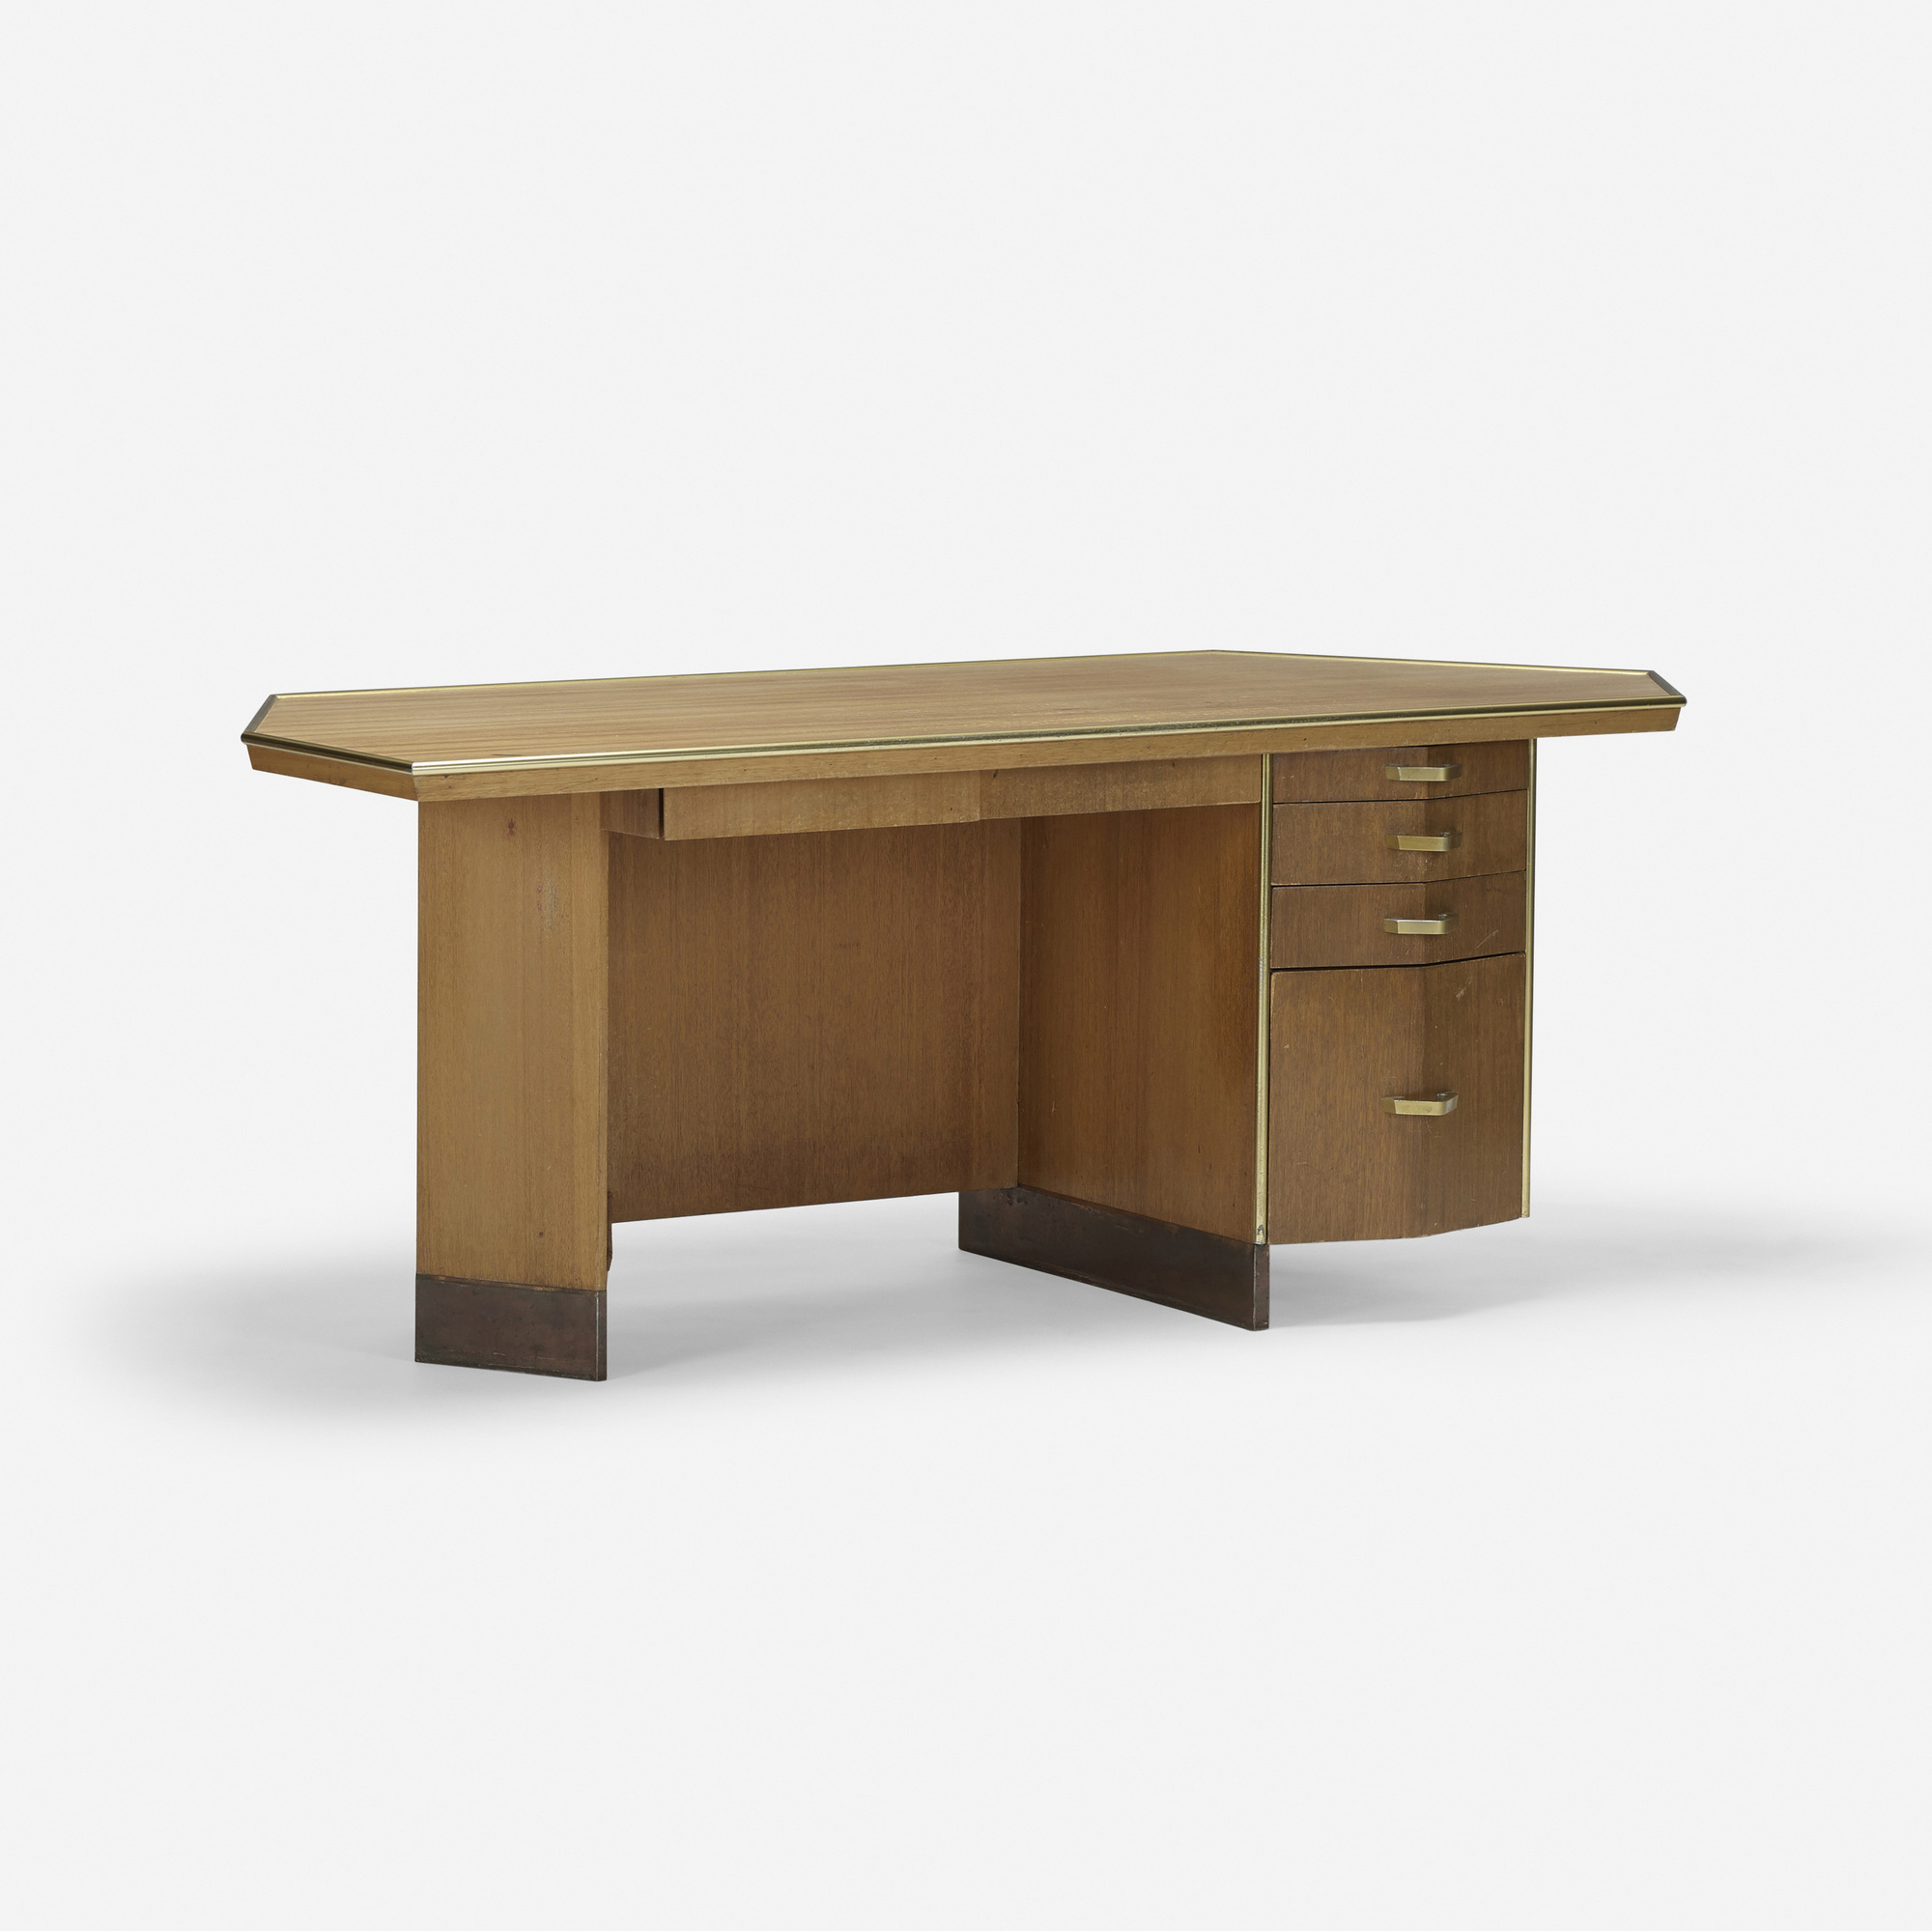 255: Frank Lloyd Wright / desk with wastepaper basket from Price Tower, Bartlesville, Oklahoma (1 of 4)